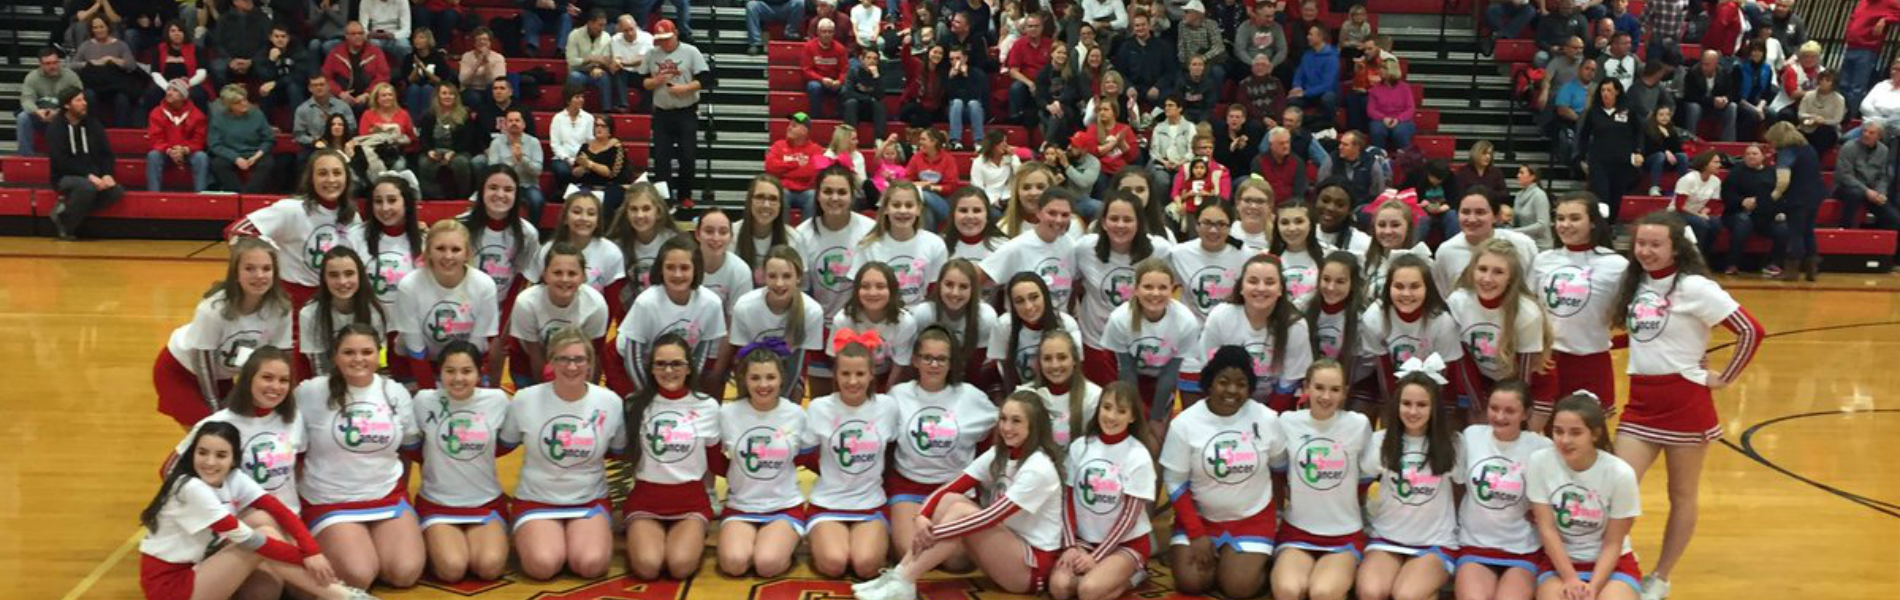 Jump Over Cancer - Eastwood and Bowling Green cheerleaders raise $7,600 for American Cancer Society